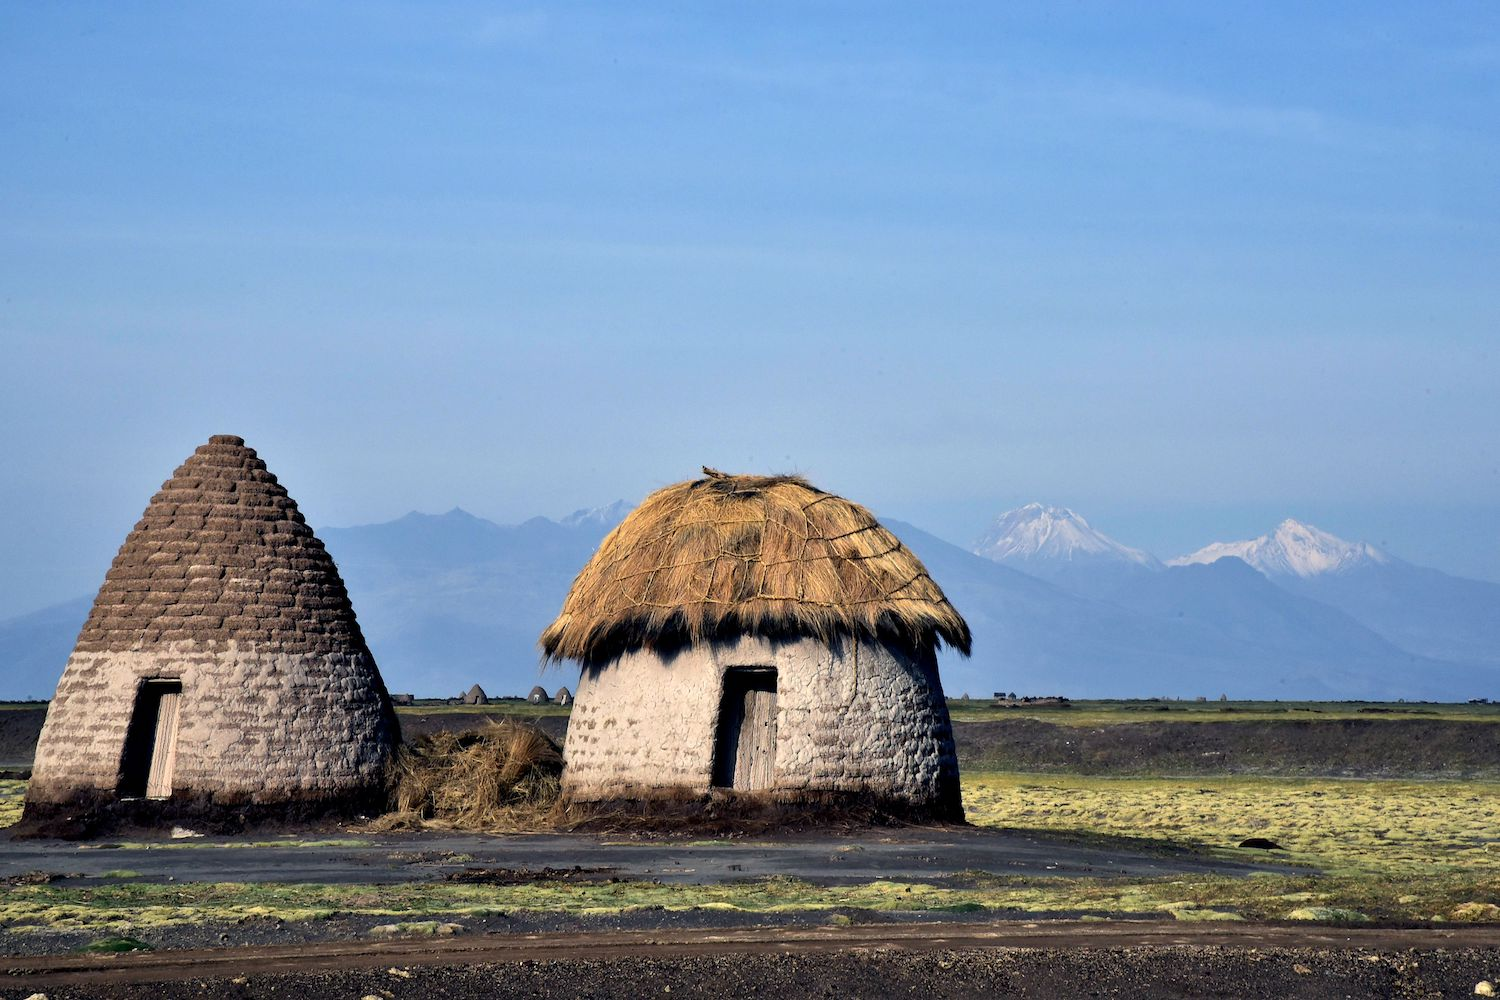 Traditional huts of the Chipaya indigenous community are seen on January 31, 2018, when the new authorities of the autonomous government of the Uru Chipaya indigenous people are sworn in, in the town of Uru Chipaya in southern Bolivia. The authorities of the new autonomous government were elected through different procedures allowed by the national constitution and based on the habits and customs of the Uru Chipaya people, who number just 2,000 today but have lived in the Bolivian highlands for many centuries. / AFP PHOTO / AIZAR RALDES        (Photo credit should read AIZAR RALDES/AFP/Getty Images)